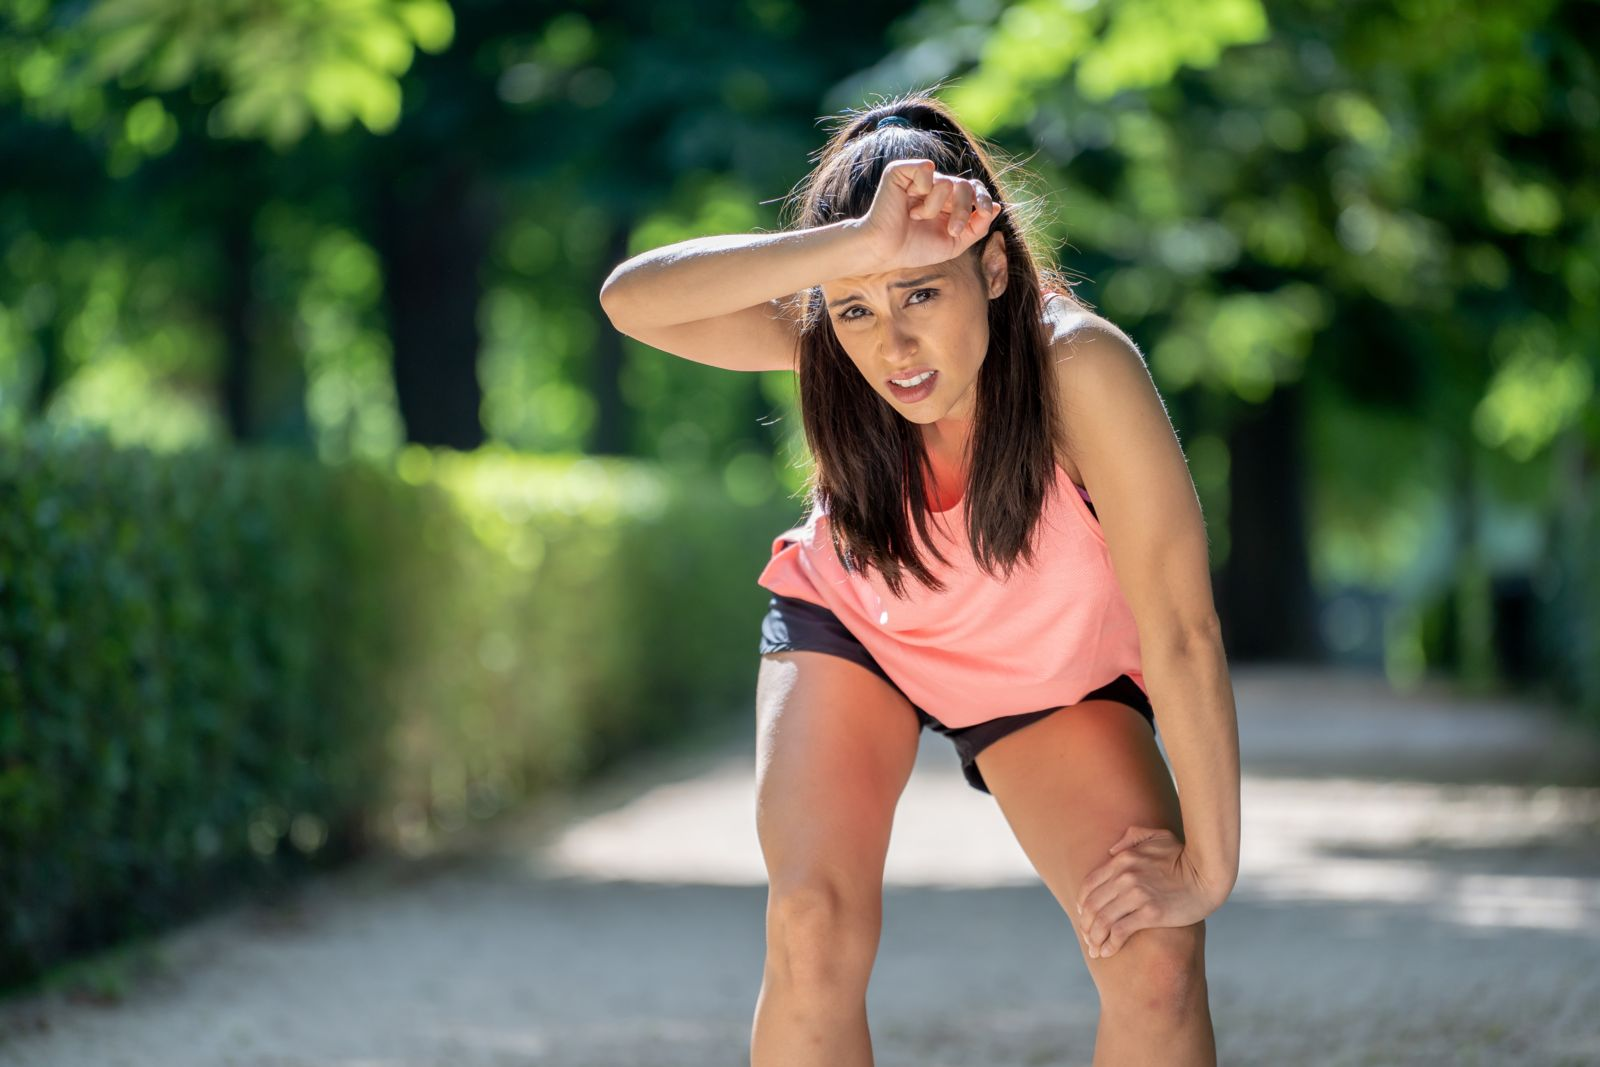 If you're sluggish or in pain, you may need to stop running for a while